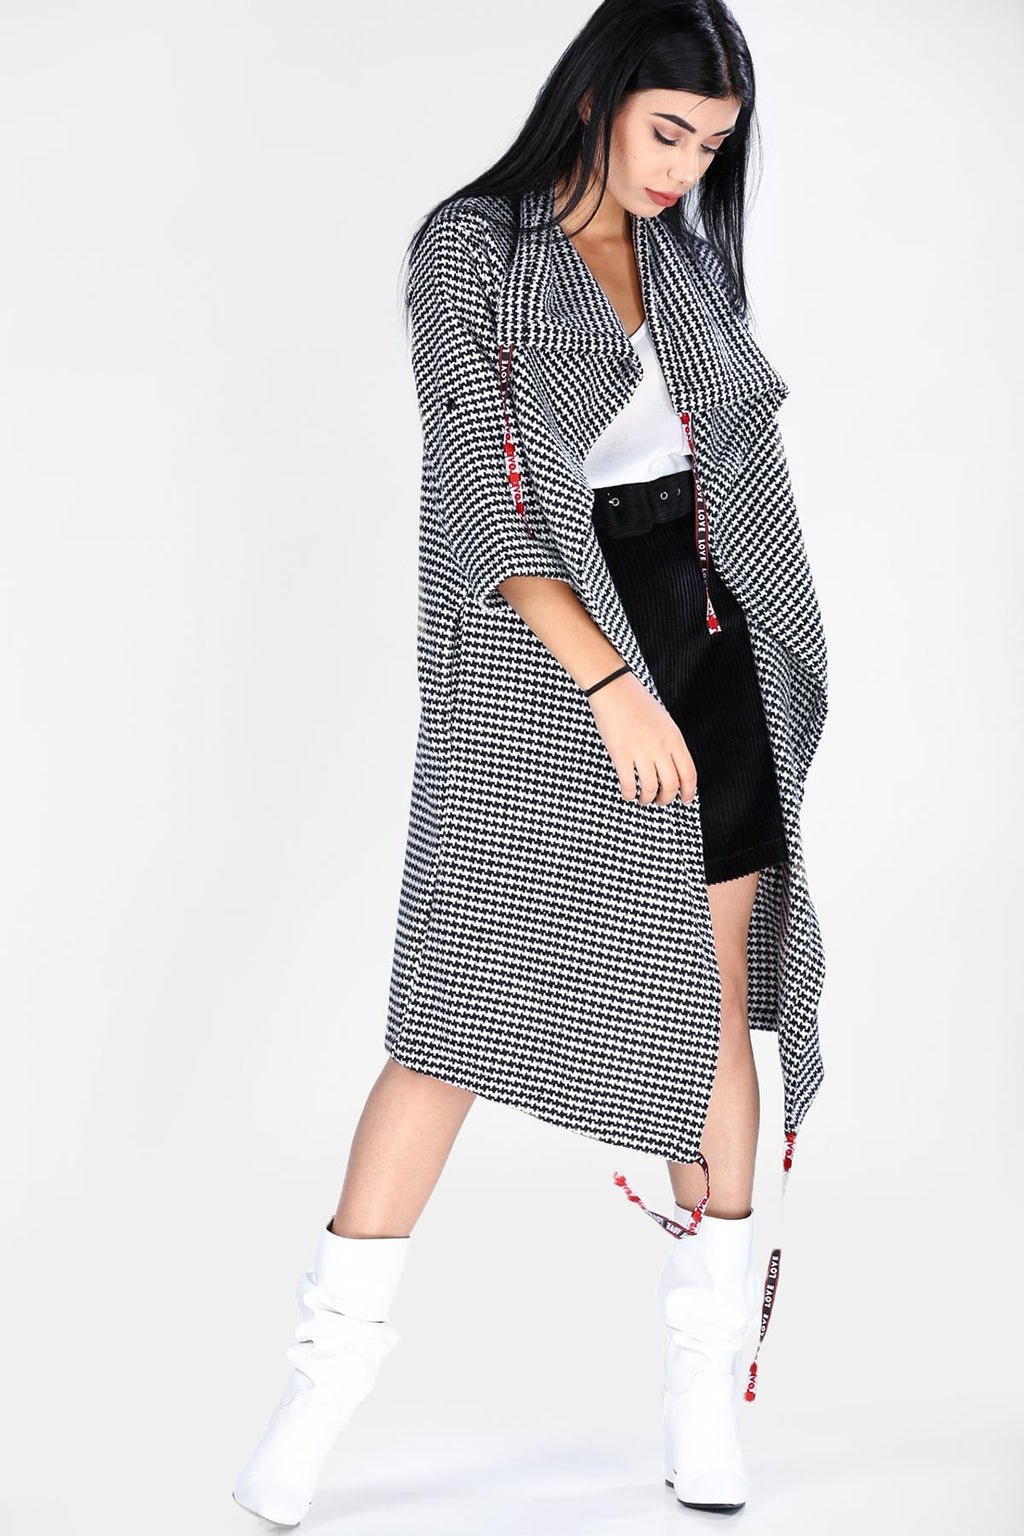 Women's Long Patterned Jacket(Contest) - THE UNIQUE FIT